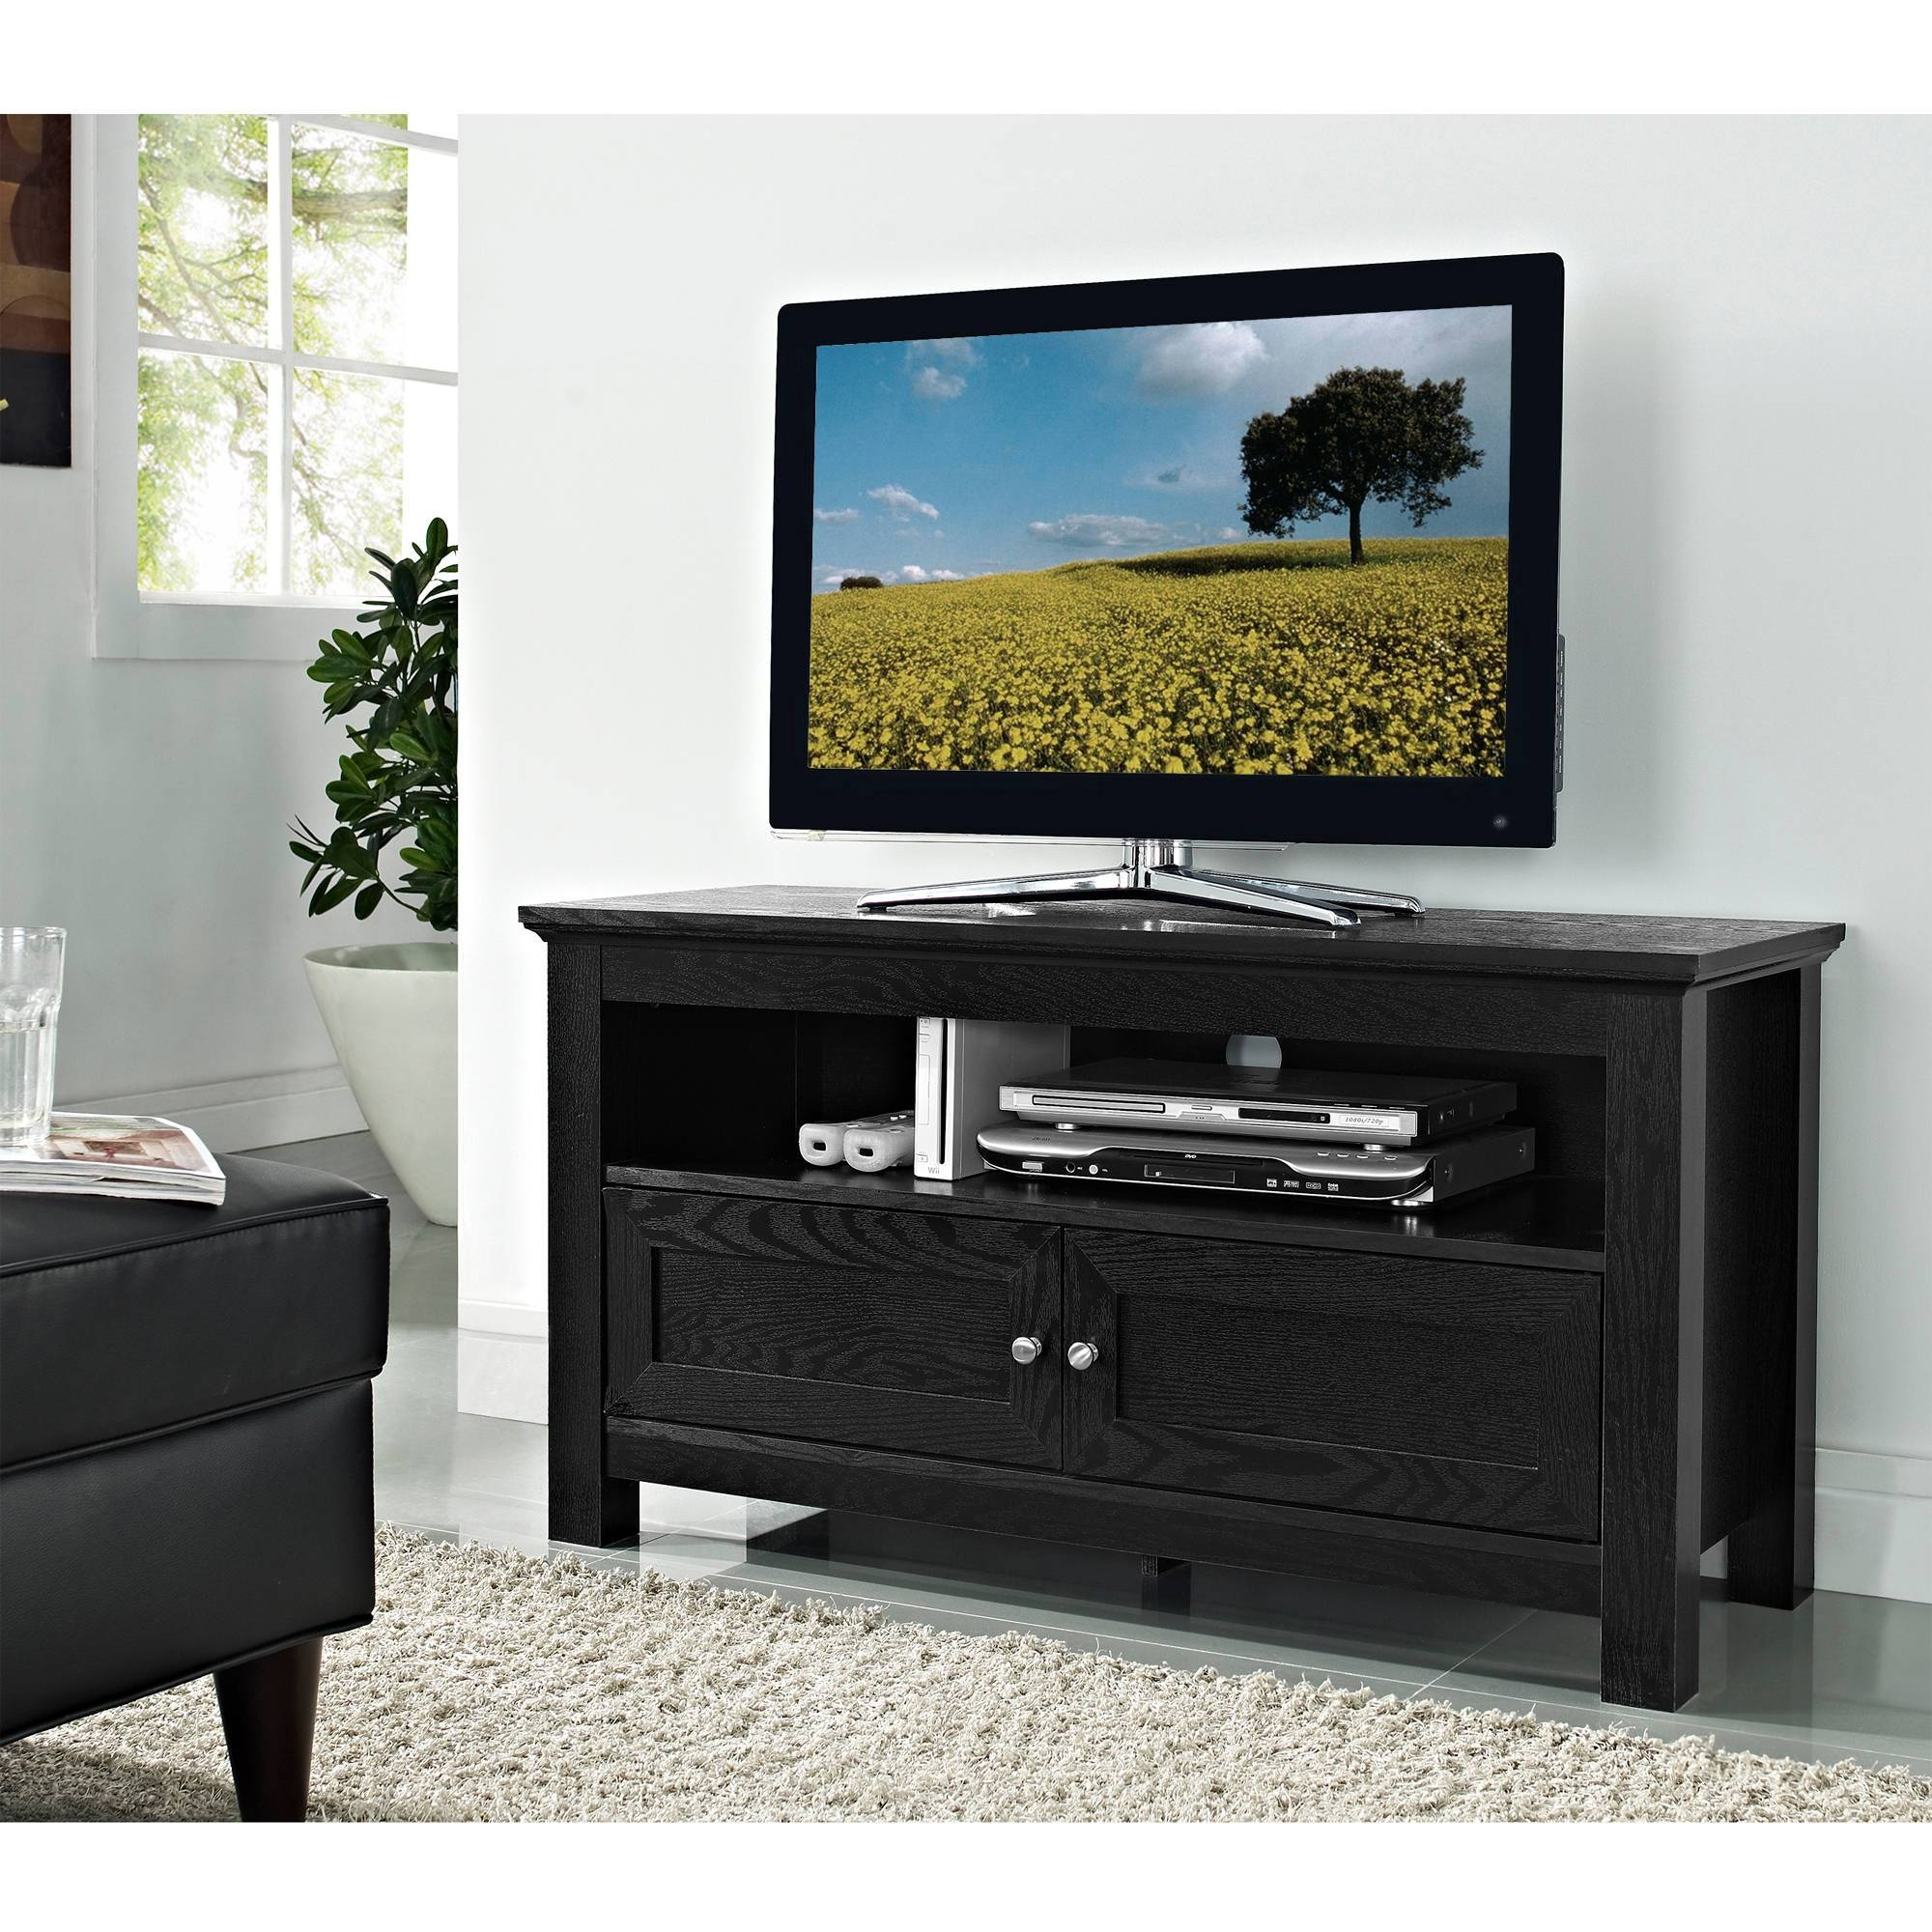 Wall Units: Amazing Walmart Entertainment Center Tv Stands Cheap with regard to Black Tv Cabinets With Drawers (Image 15 of 15)